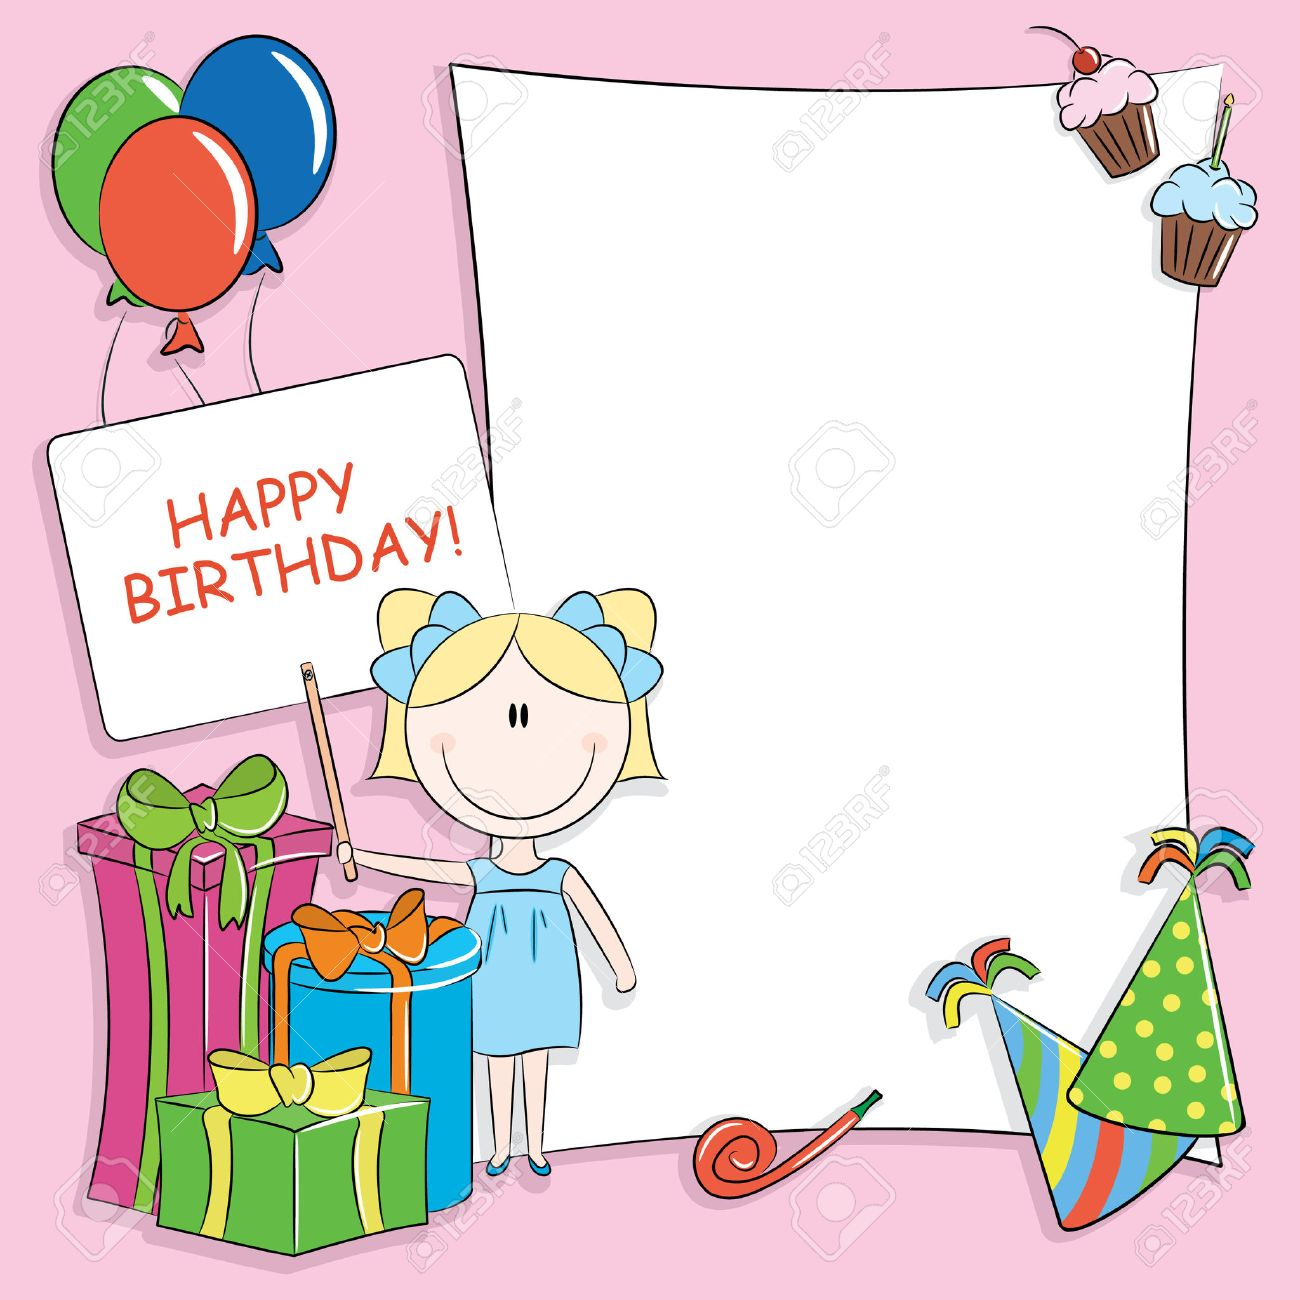 Happy birthday greeting card with blank place for your wishes happy birthday greeting card with blank place for your wishes and message stock vector 7548128 bookmarktalkfo Gallery